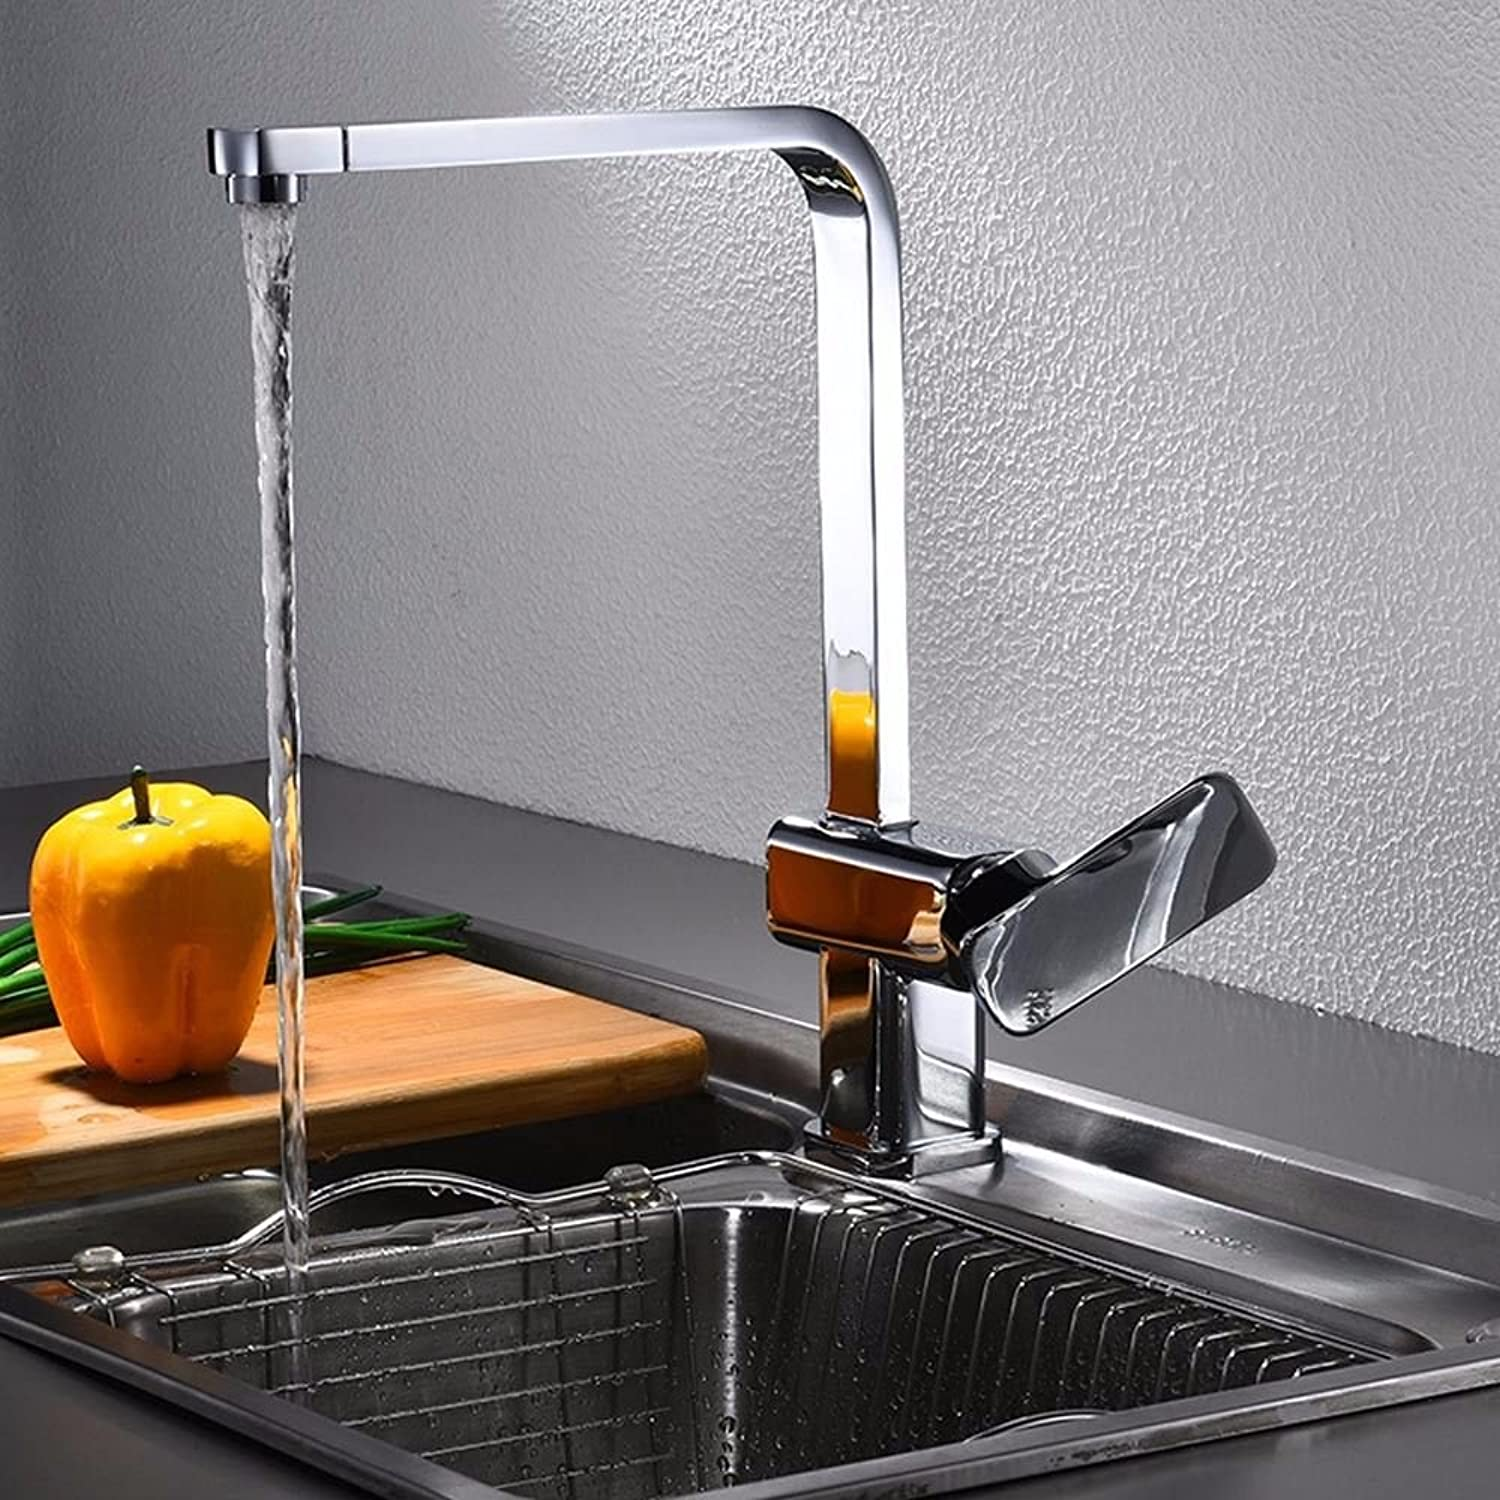 MulFaucet Kitchen Faucet All-Copper Single-Screw Square hot and Cold Mixed Water Sink Sink Faucet